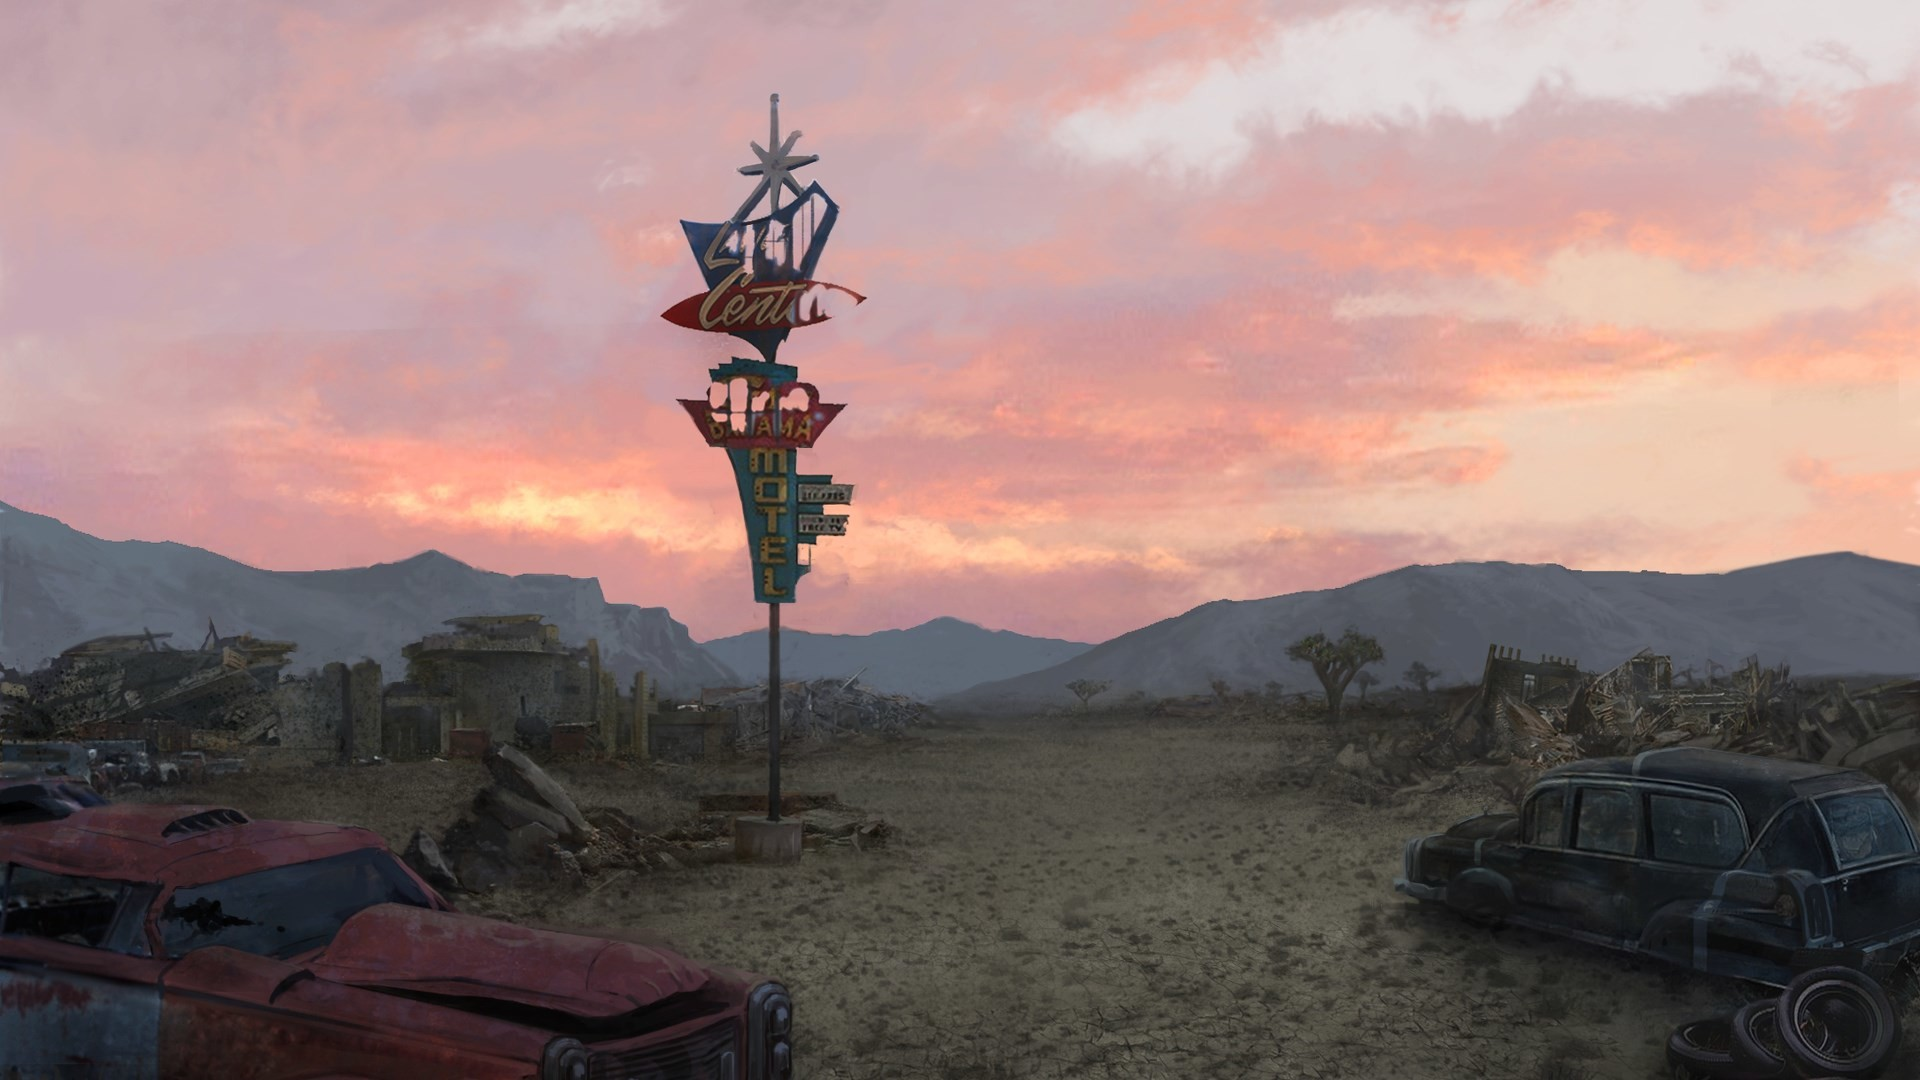 fallout new vegas computer wallpaper backgrounds (Happy Cook 1920×1080)